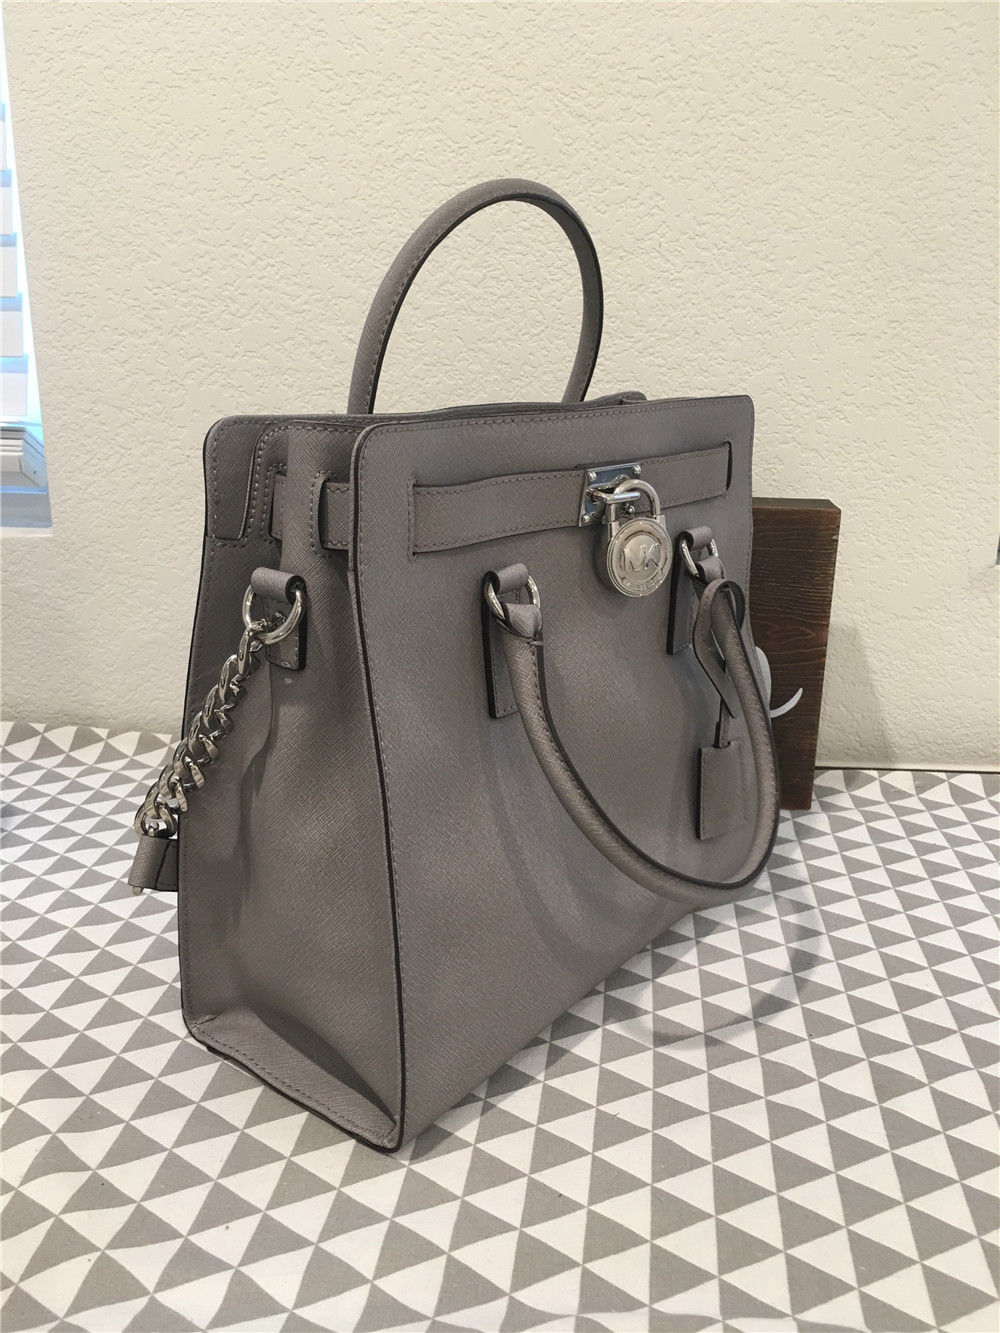 02451b0bd91a02 Michael Kors LARGE DILLON Saffiano LEATHER DOVE TOTE 30H5SAIT3L